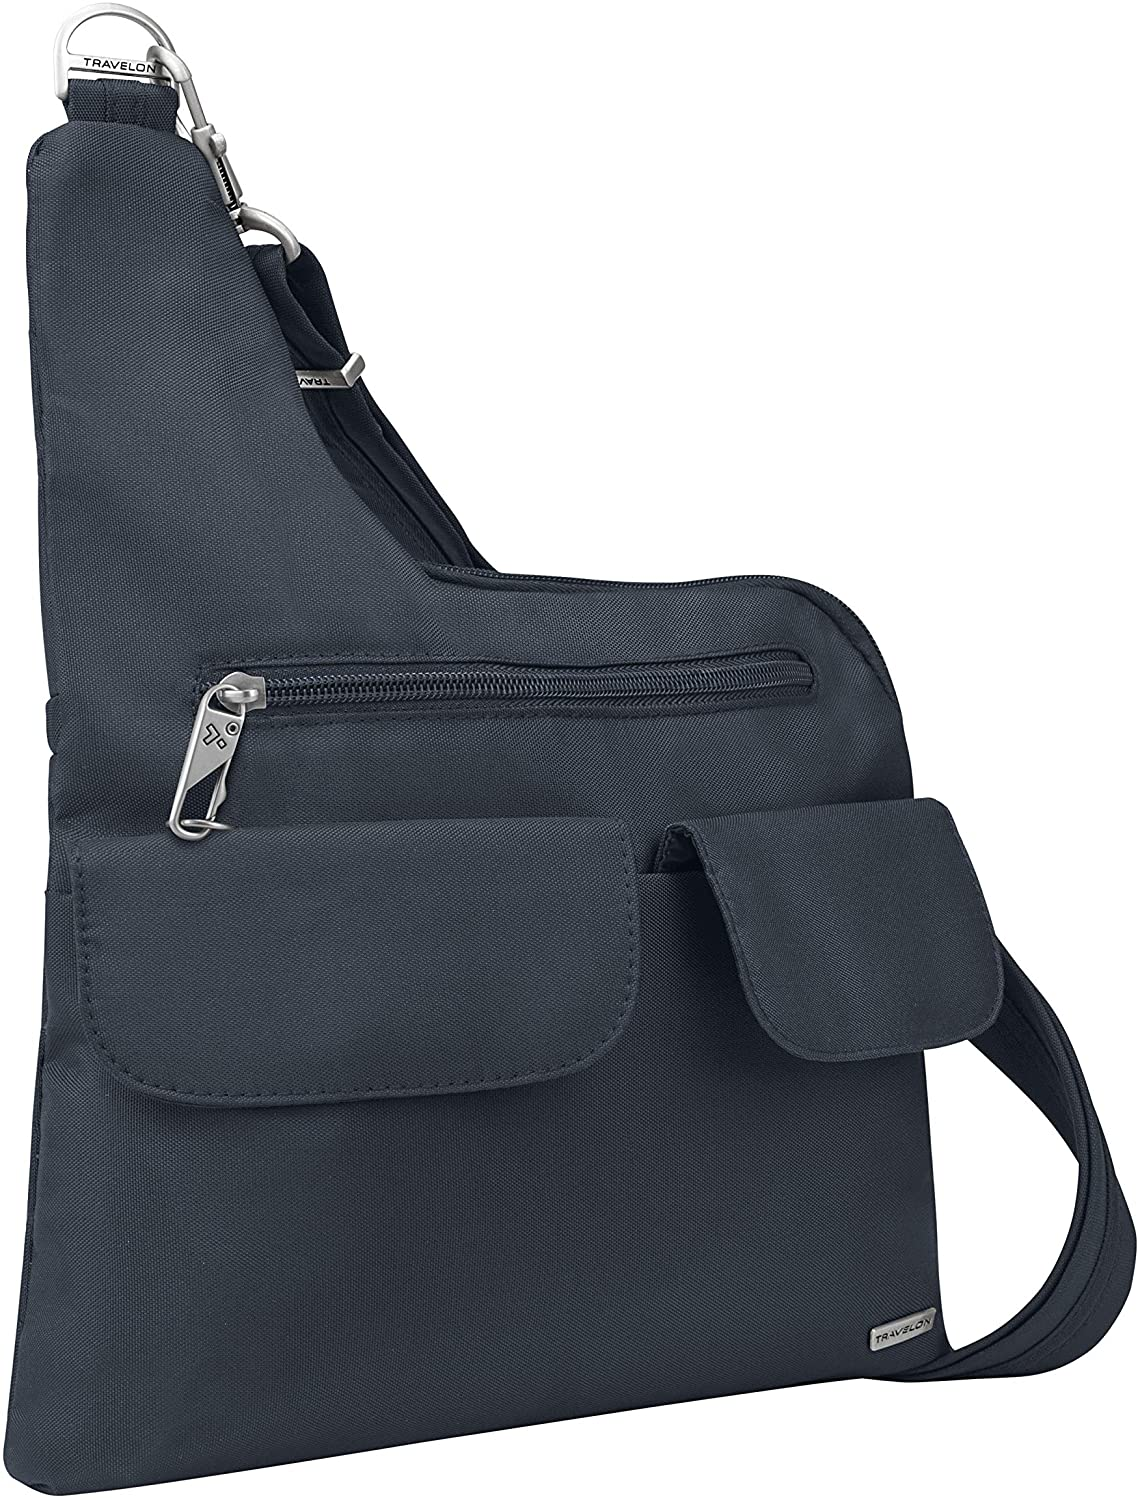 Travelon Anti-Theft Classic Messenger Bag Midnight